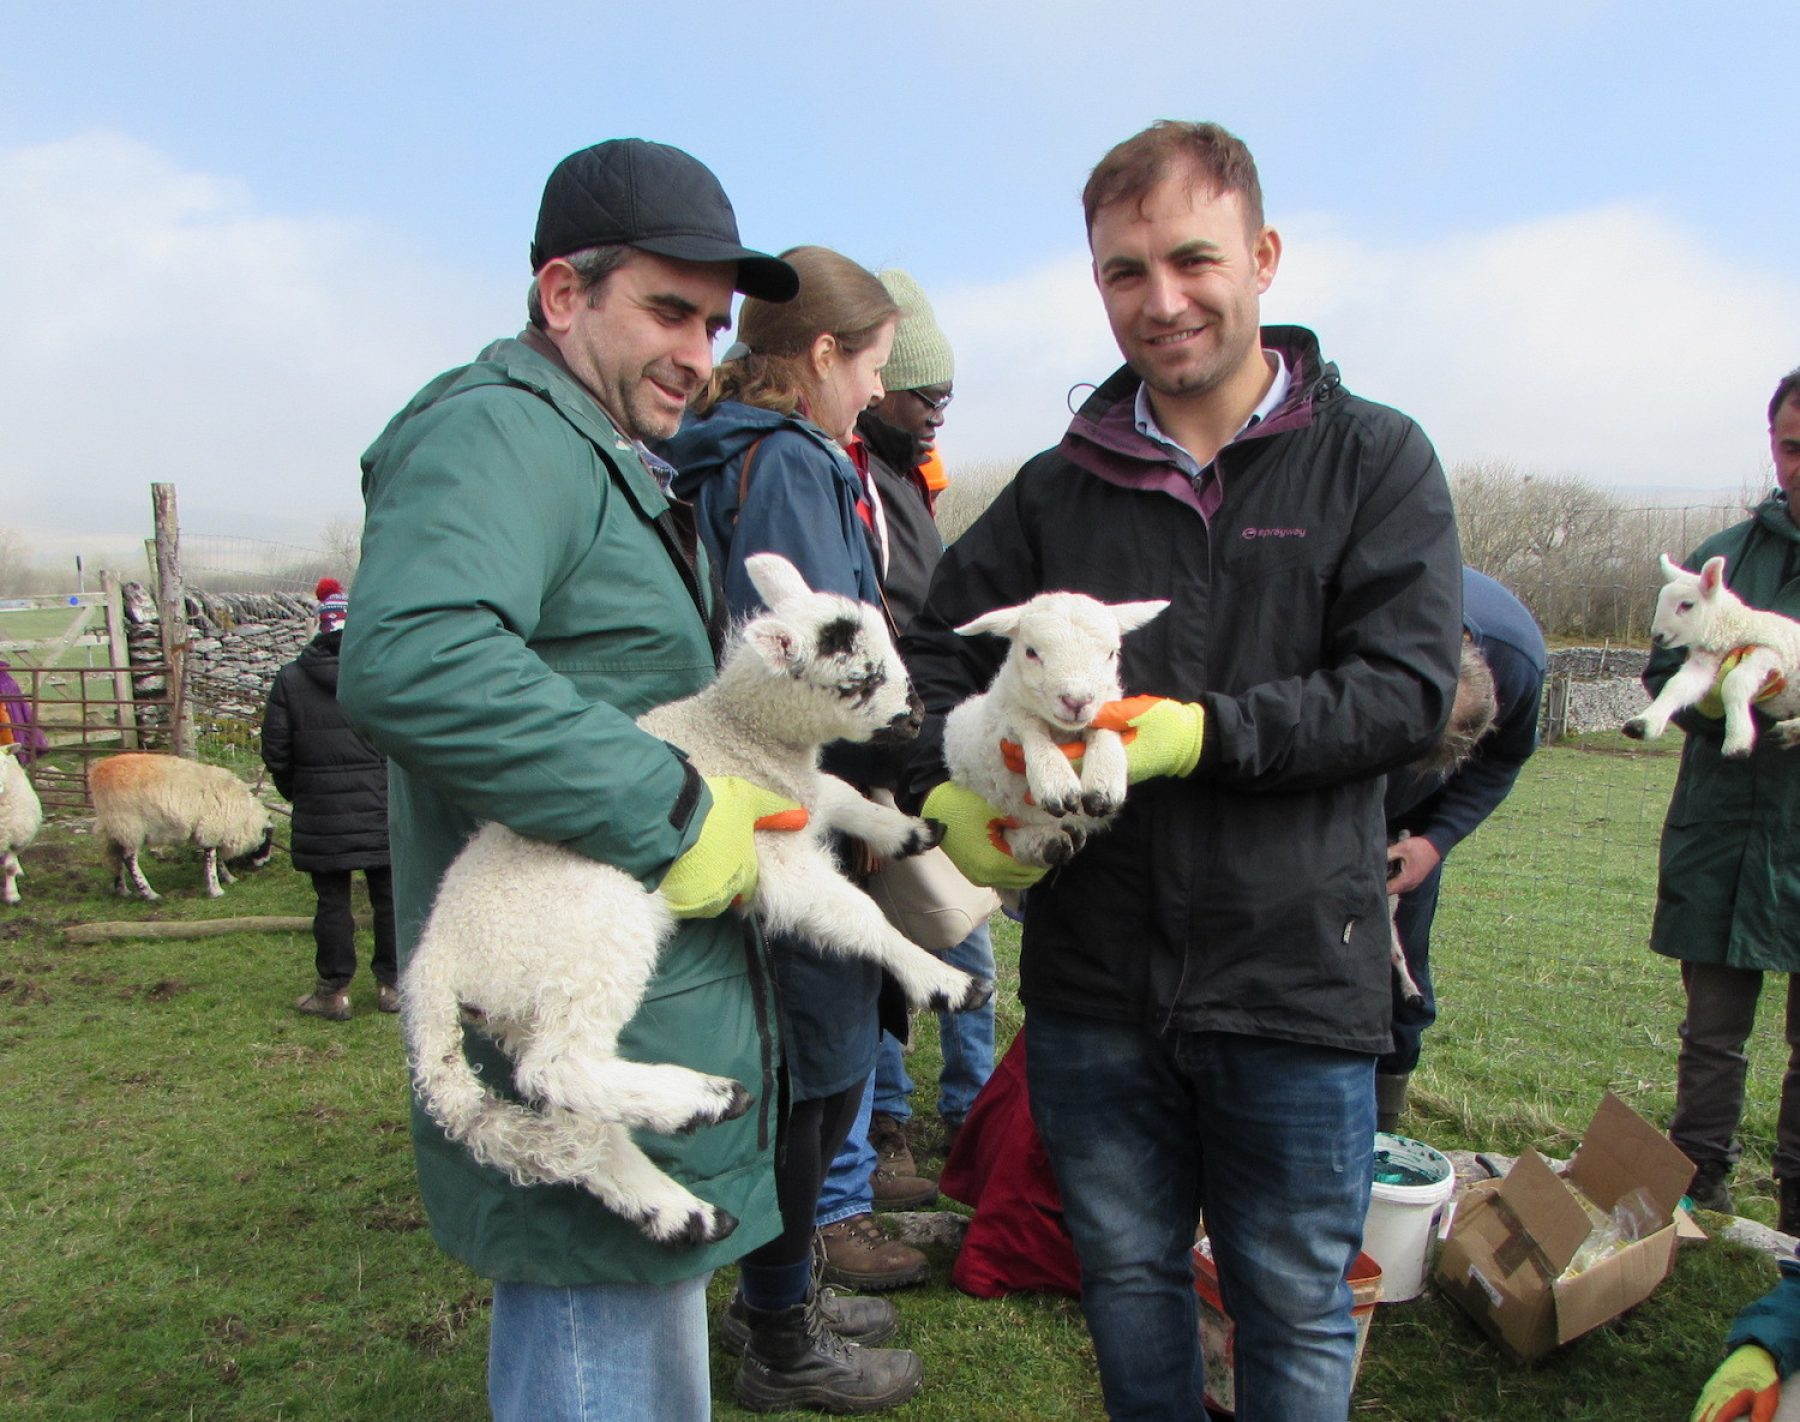 Image for Asylum seekers become shepherds in the Yorkshire Dales for a day